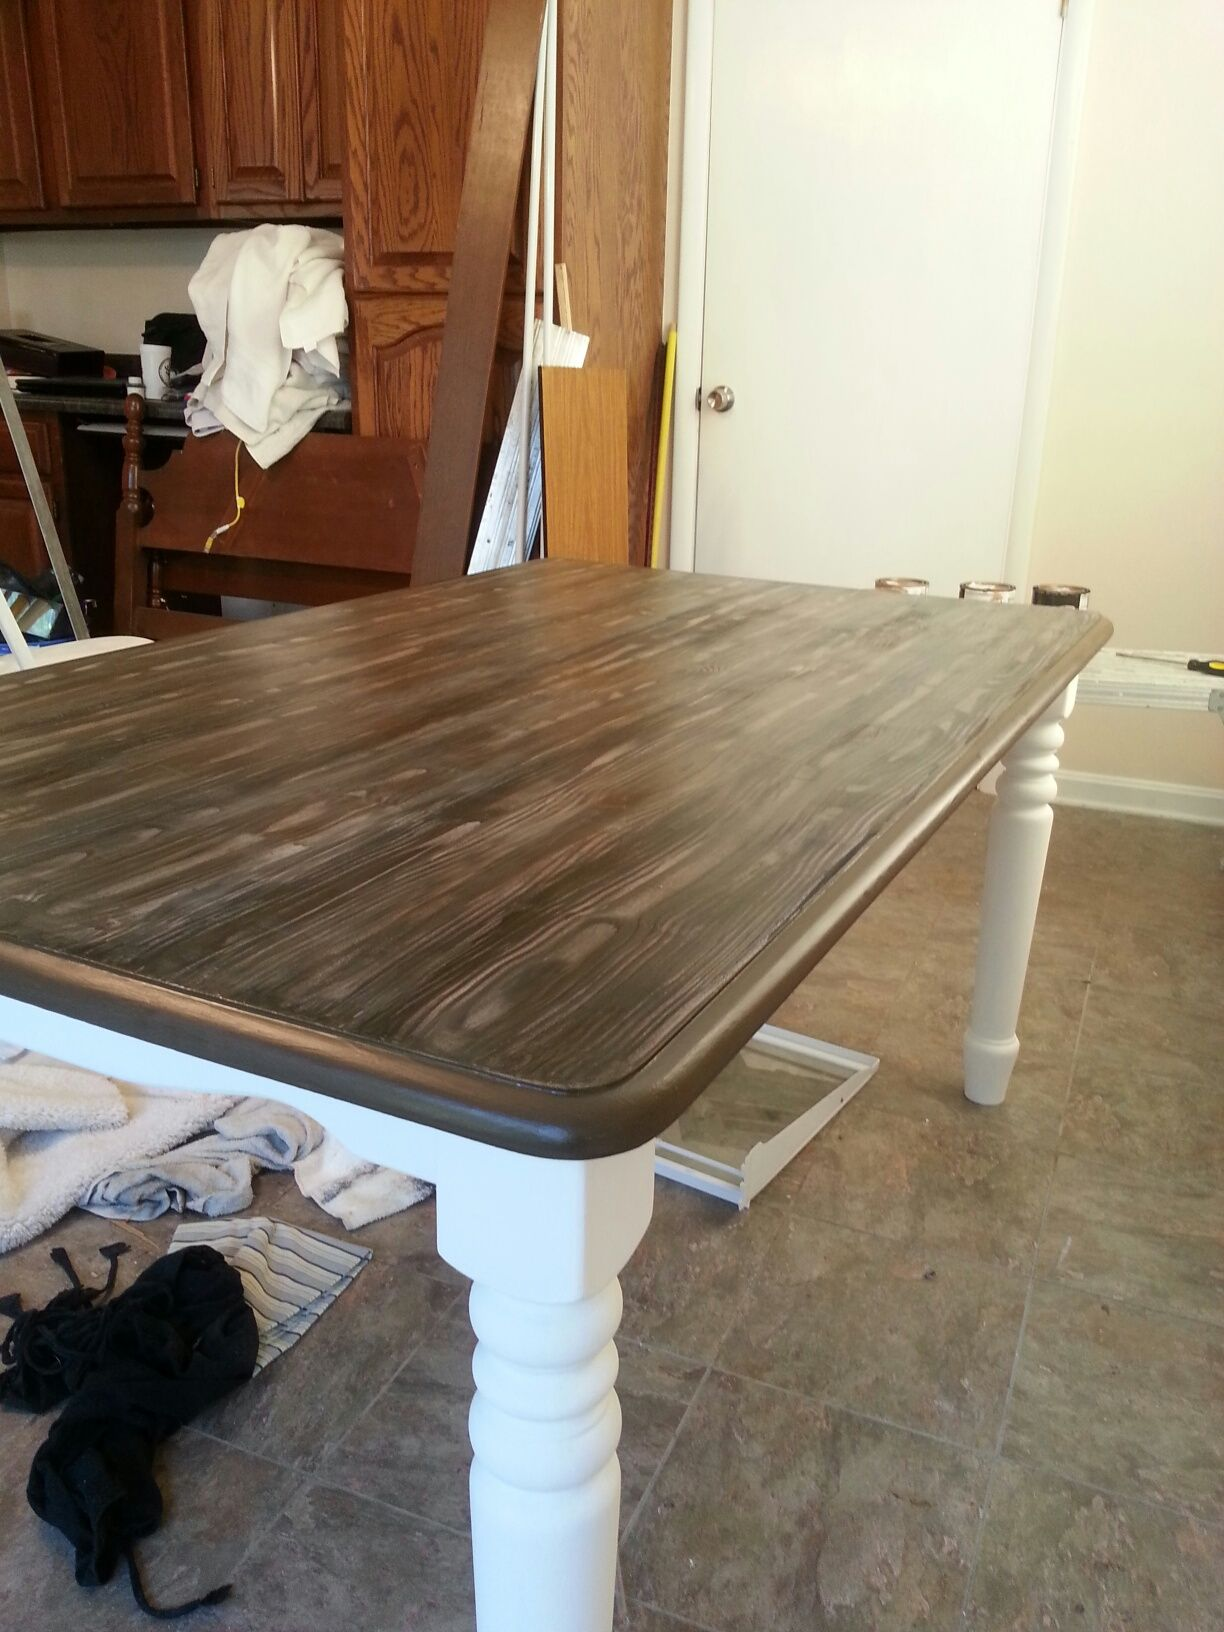 refurbished table with faux finish of barnwood using van gogh